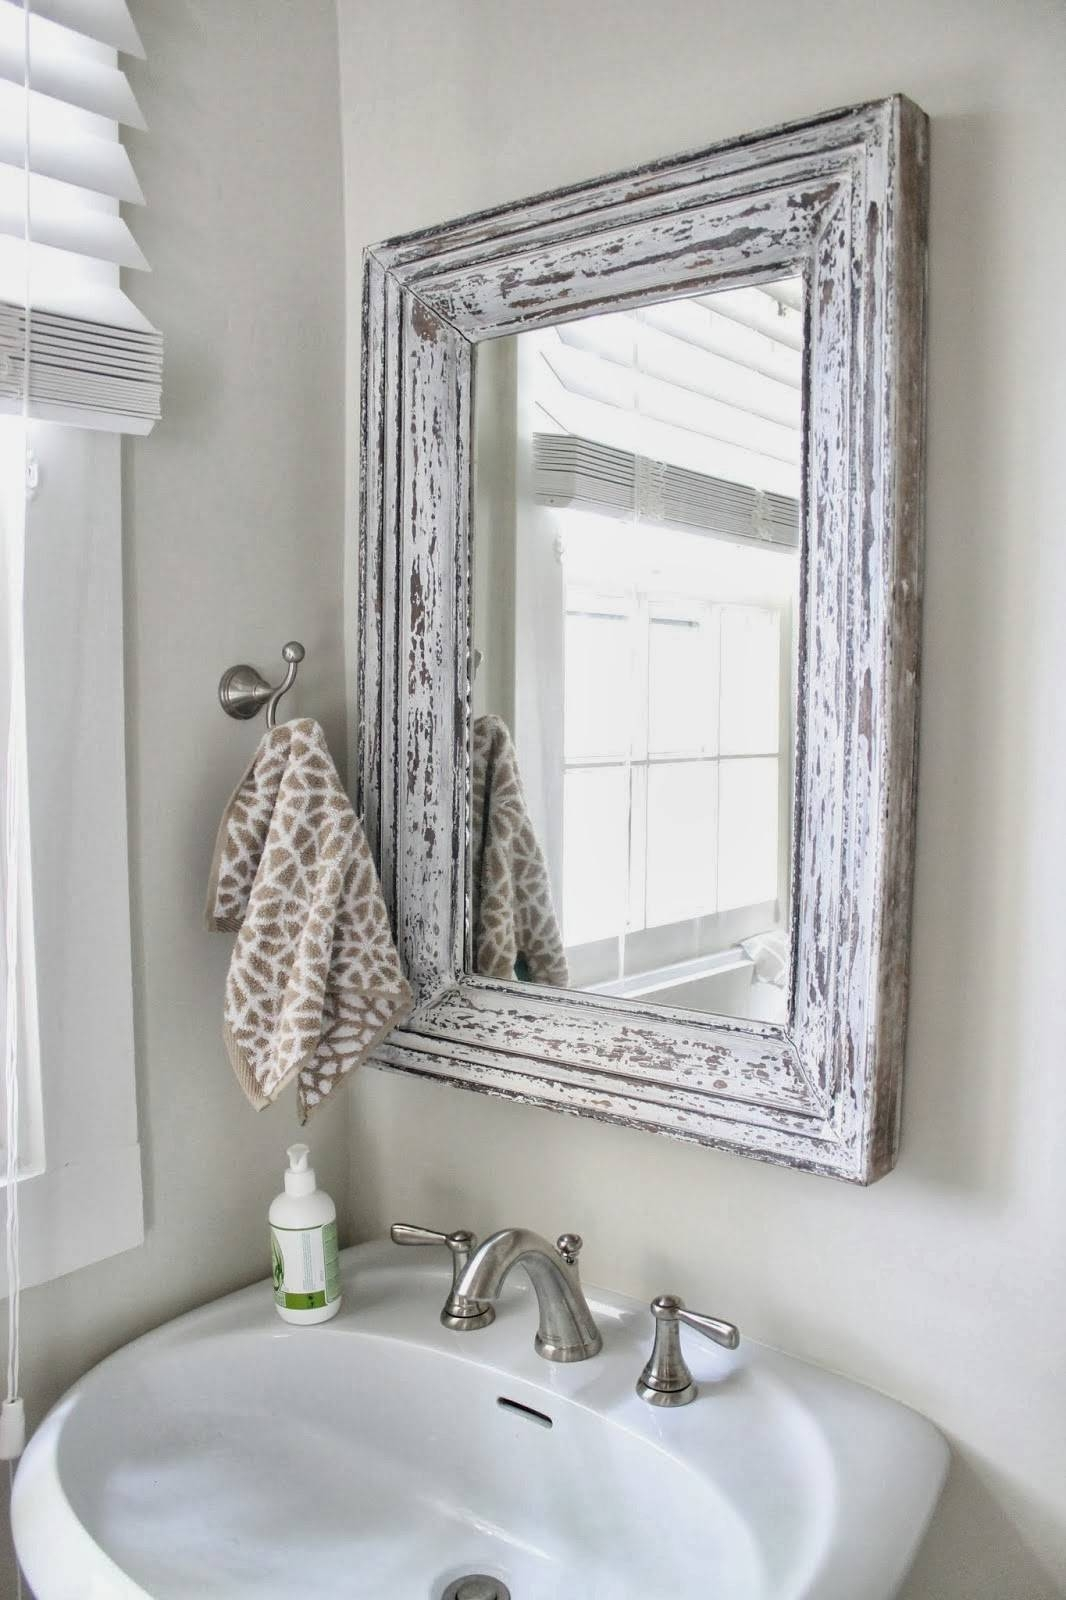 Small Bathroom Chic: Elegant Mirrors Make Bathrooms Look Bigger intended for Chic Mirrors (Image 13 of 15)